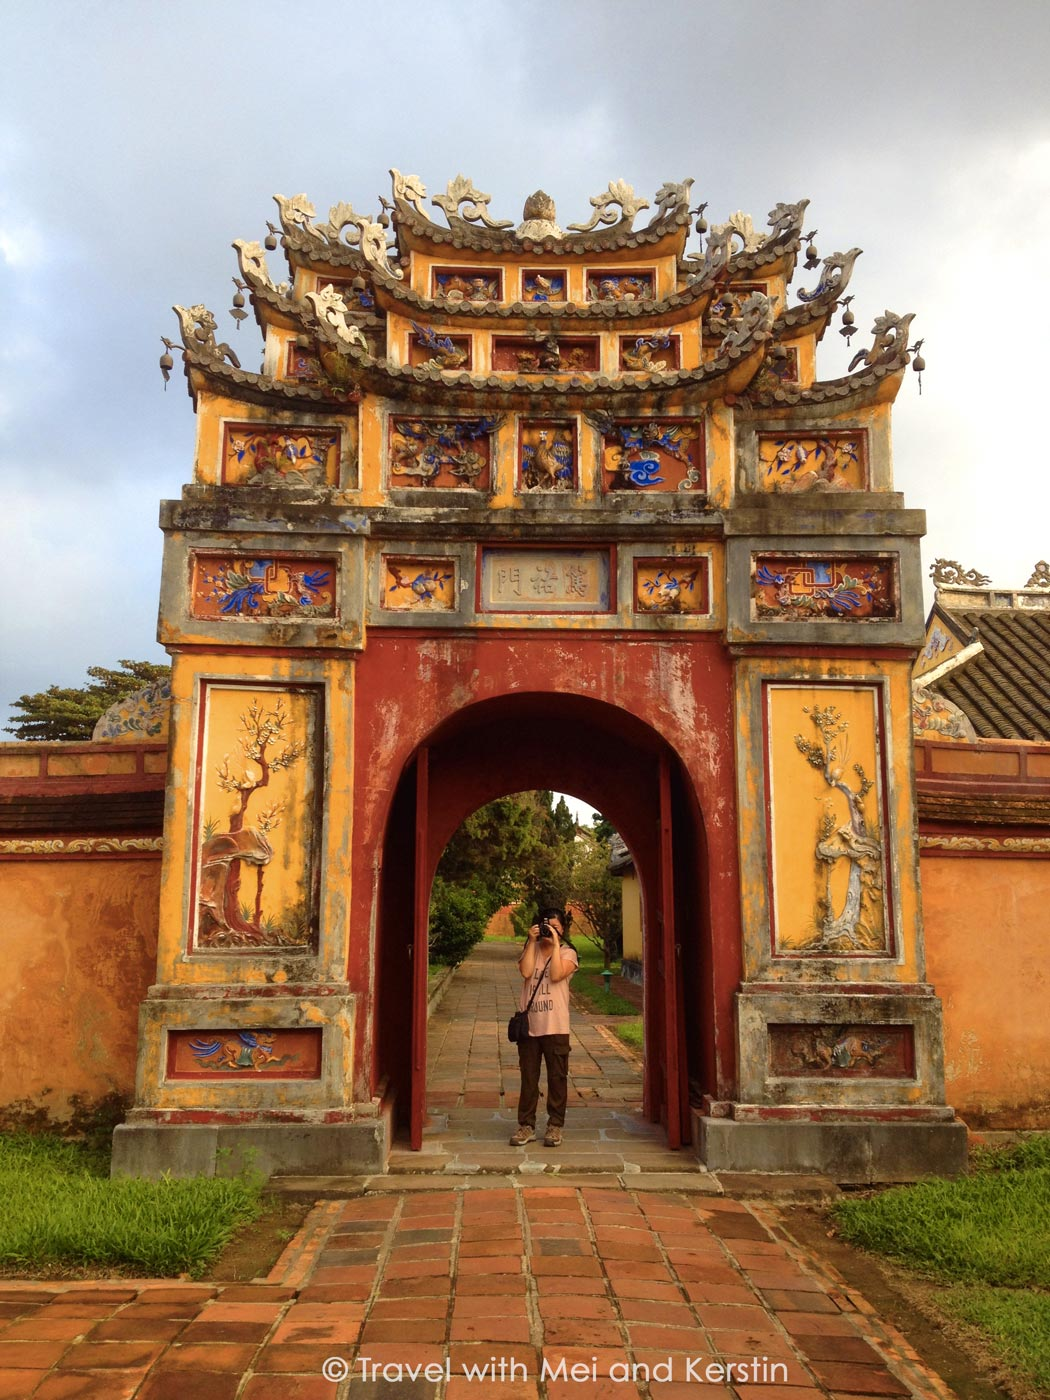 Mei at the Imperial City of Hue, Central Vietnam